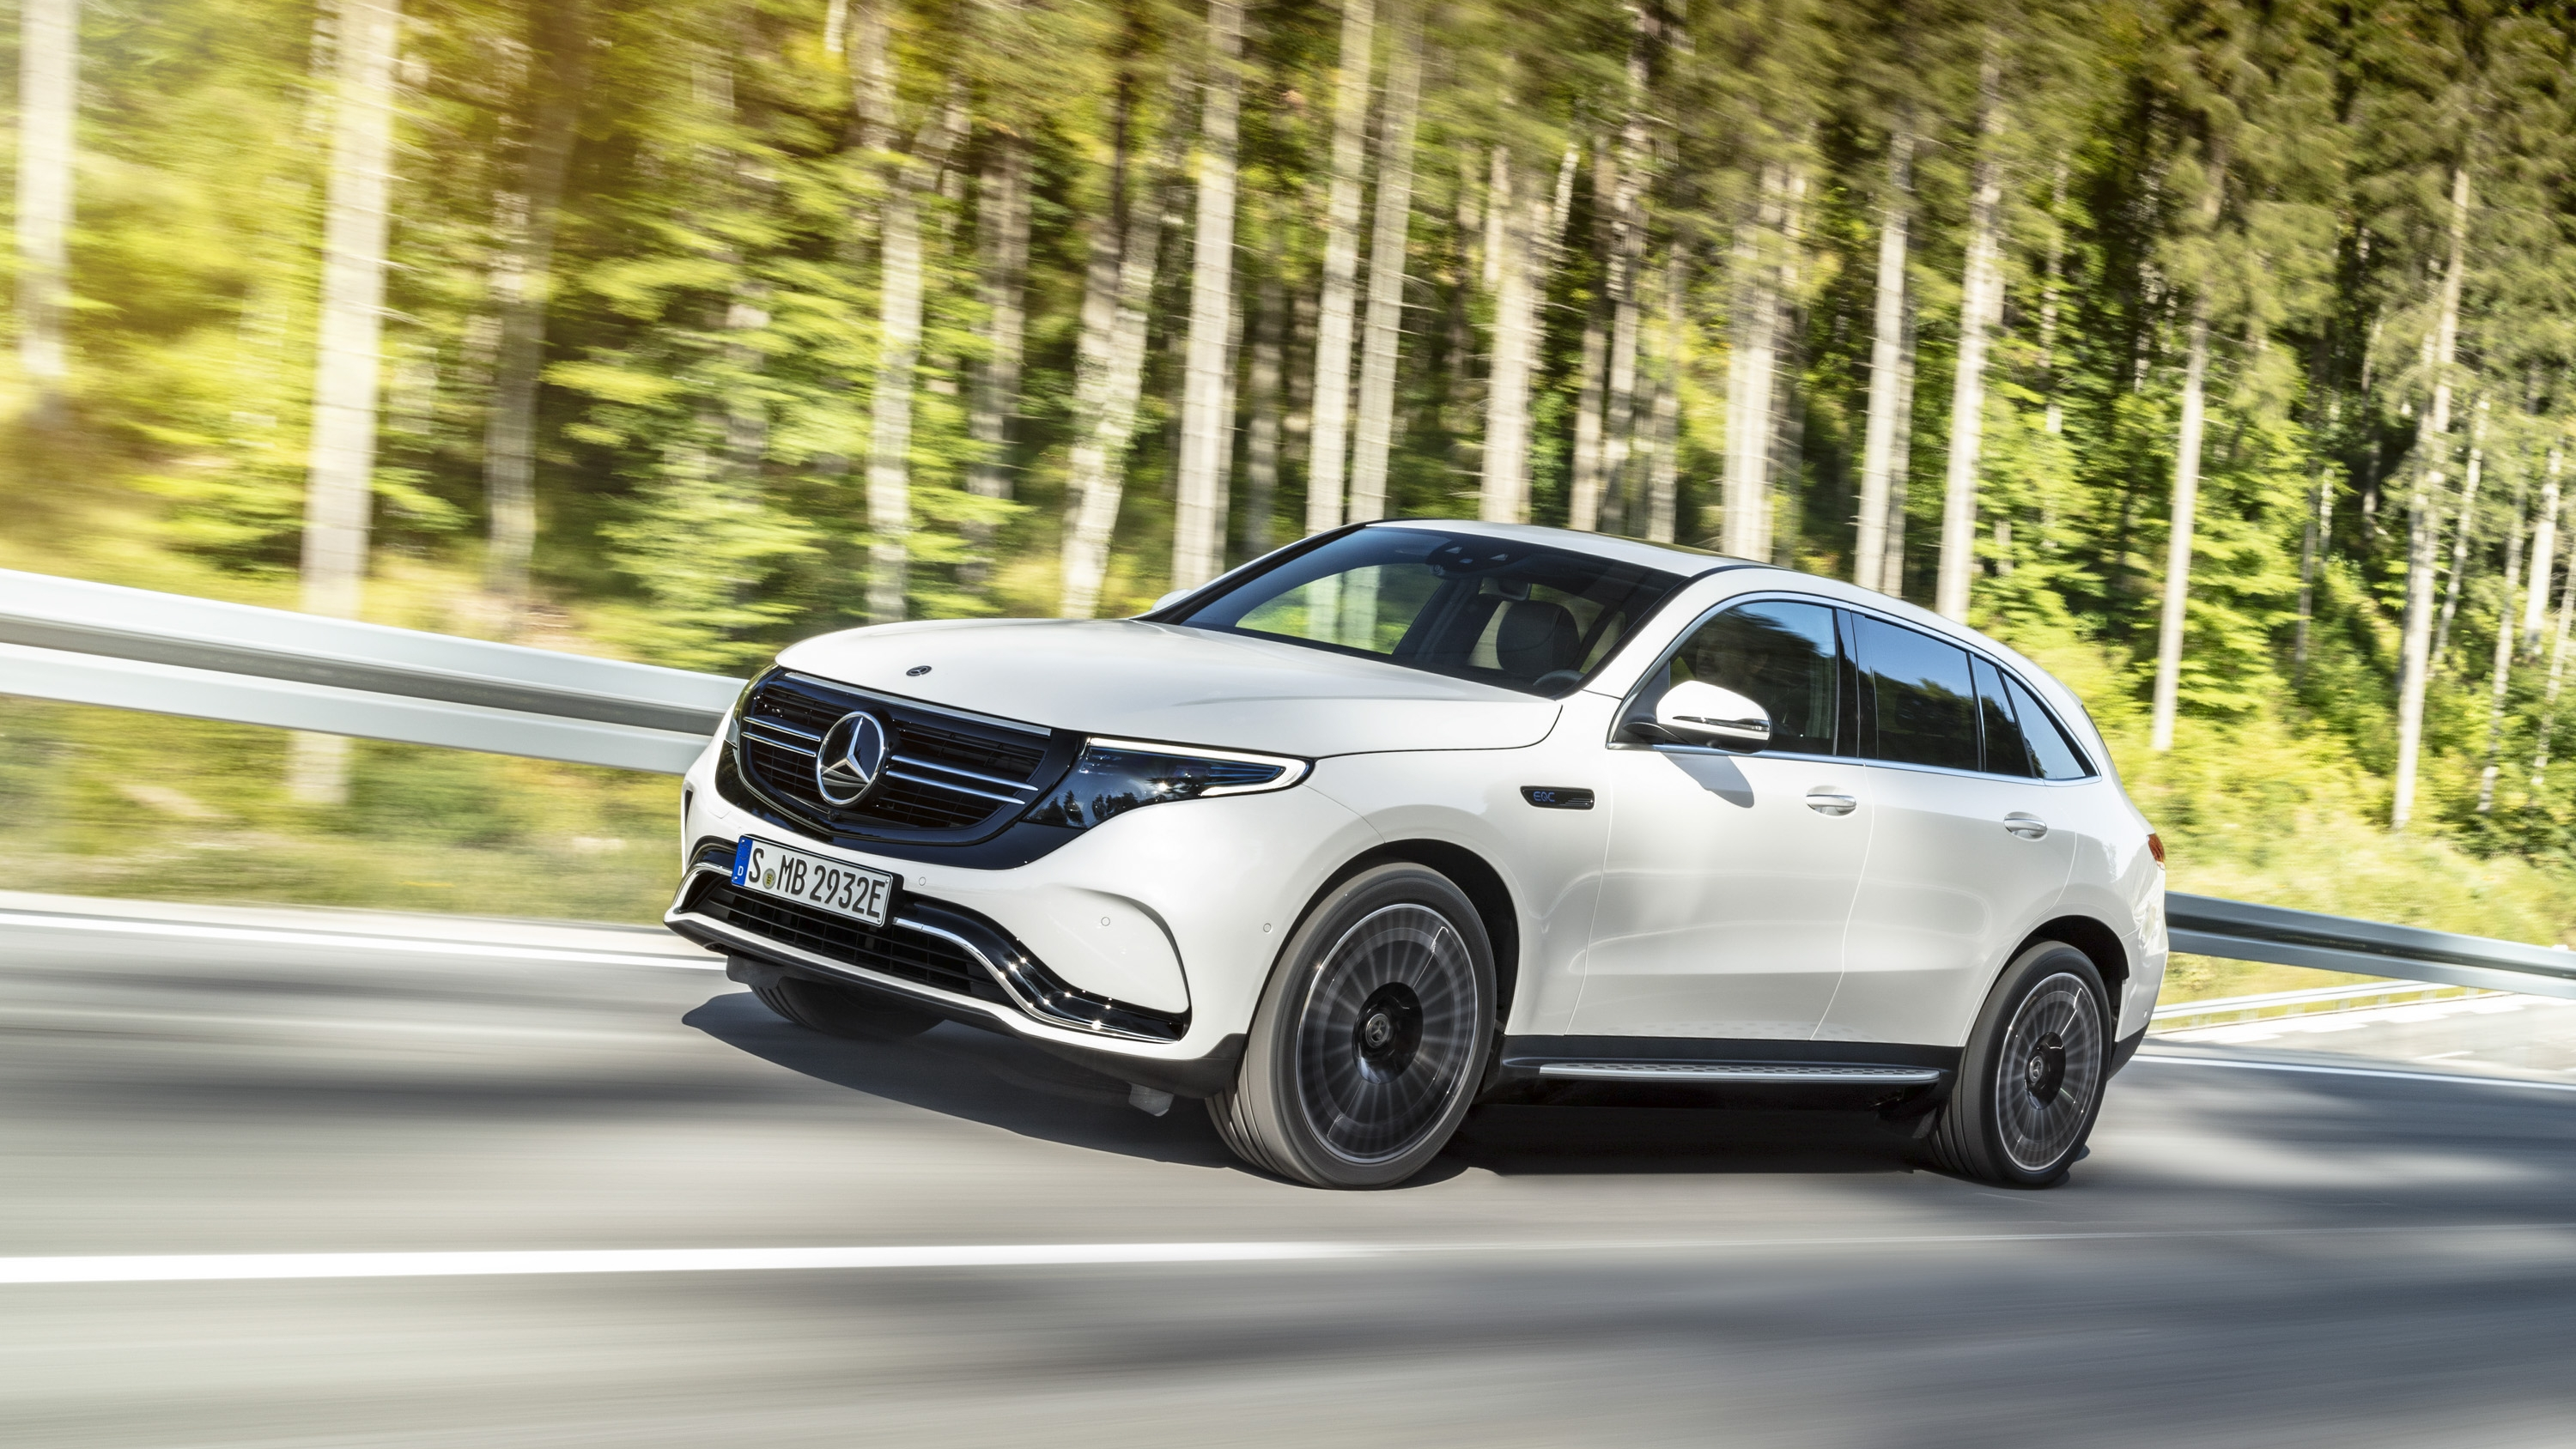 The Mercedes EQC Makes A Quiet Debut With 200 Miles Of